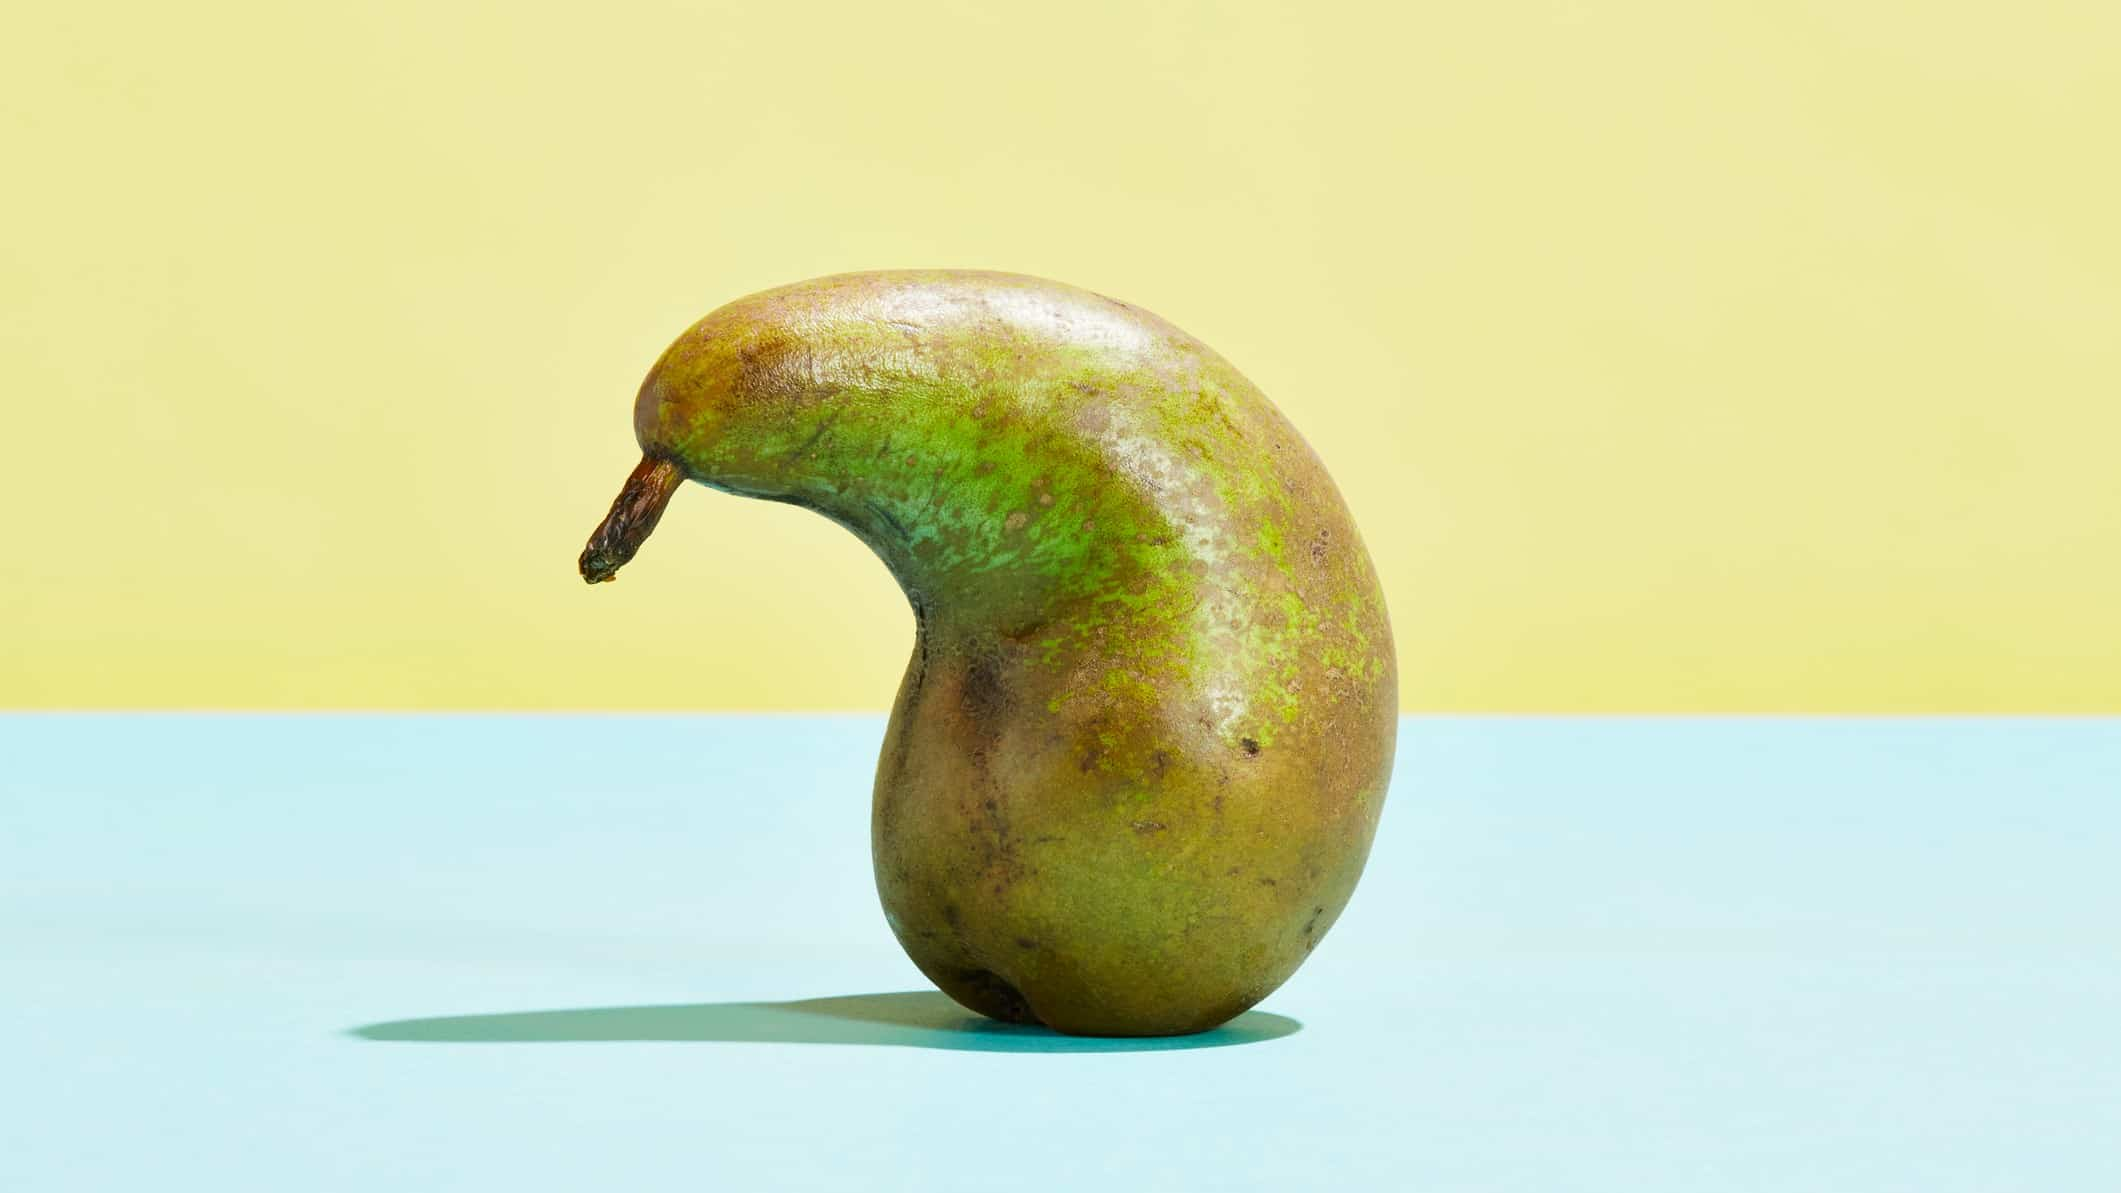 flat asx share price represented by sad looking pear